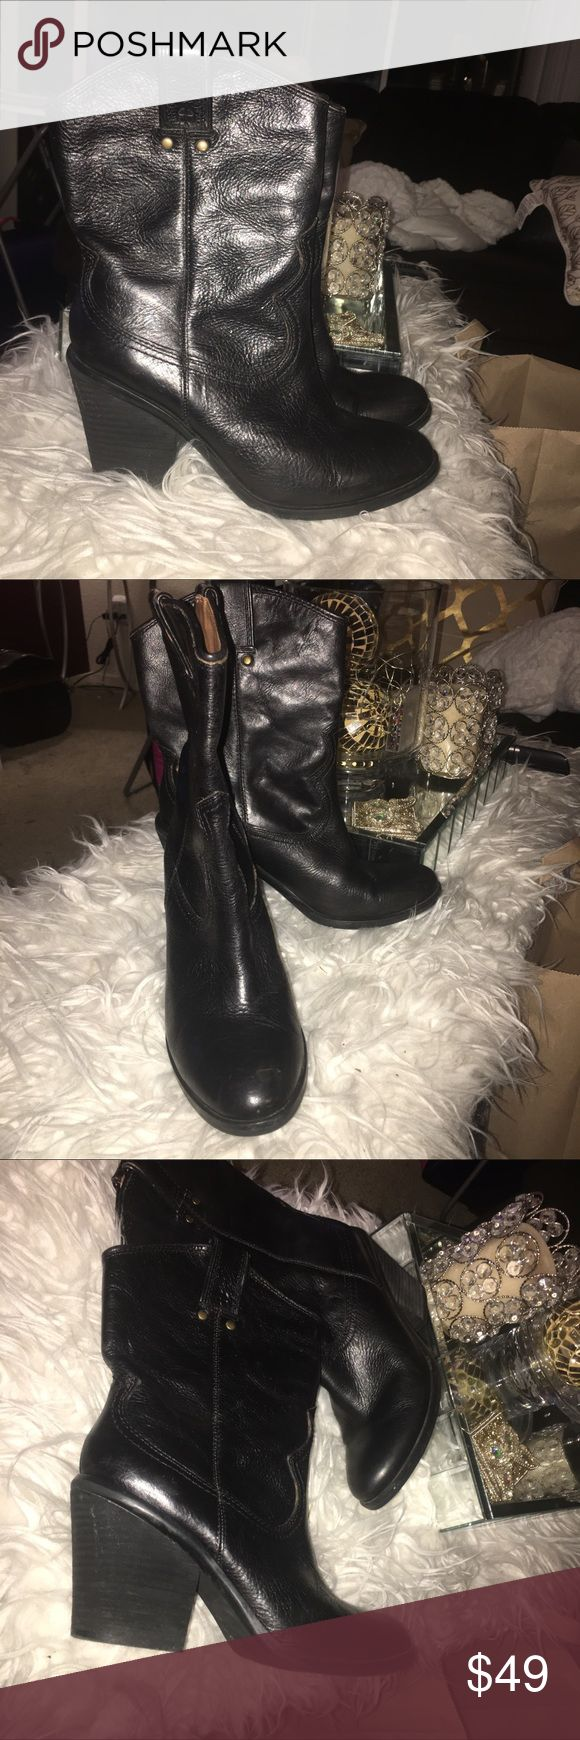 """LUCKY BRAND Elle Cowboy BOOTS Black Leather Lucky Brand """"Elle"""" genuine leather black western short boots  Size 8M/38  Heel height 3"""" Pre-owned condition Lucky Brand Shoes Ankle Boots & Booties"""